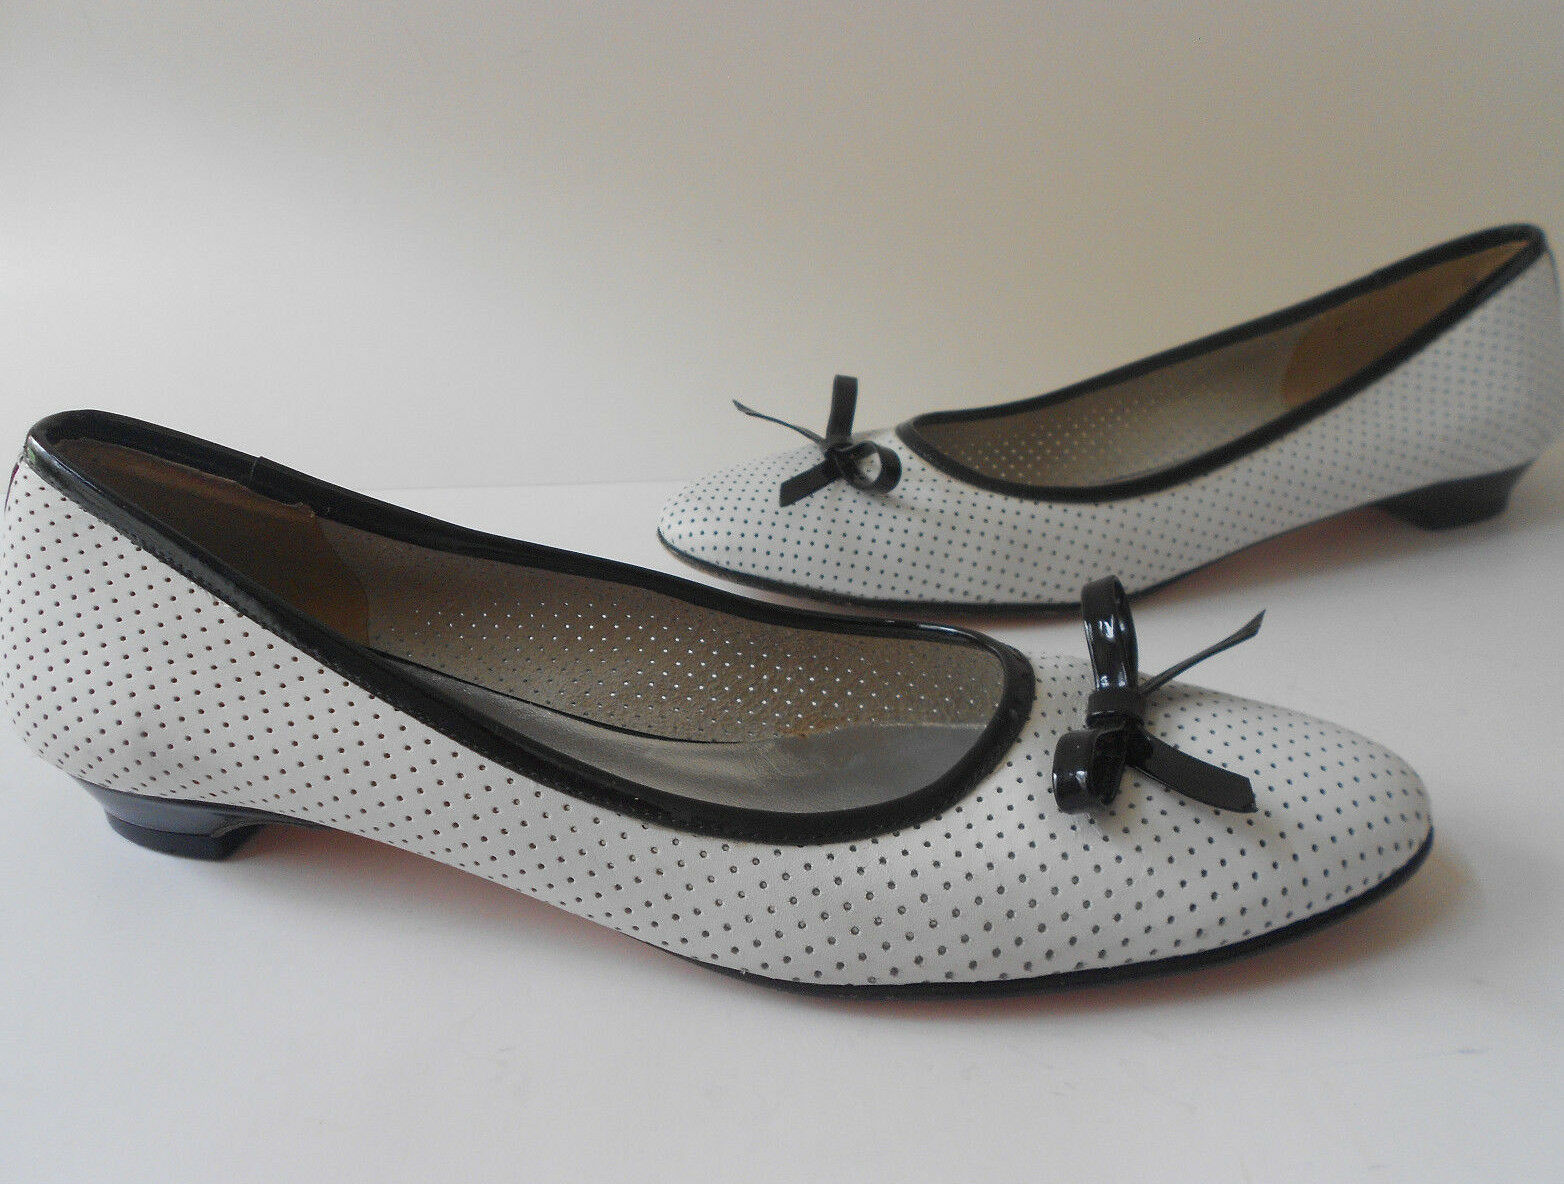 CALIGARIUS SPECTATOR US LEATHER BALLET FLATS SIZE US SPECTATOR 7 EUR 37 RARE MADE IN ITALY 6eea8c